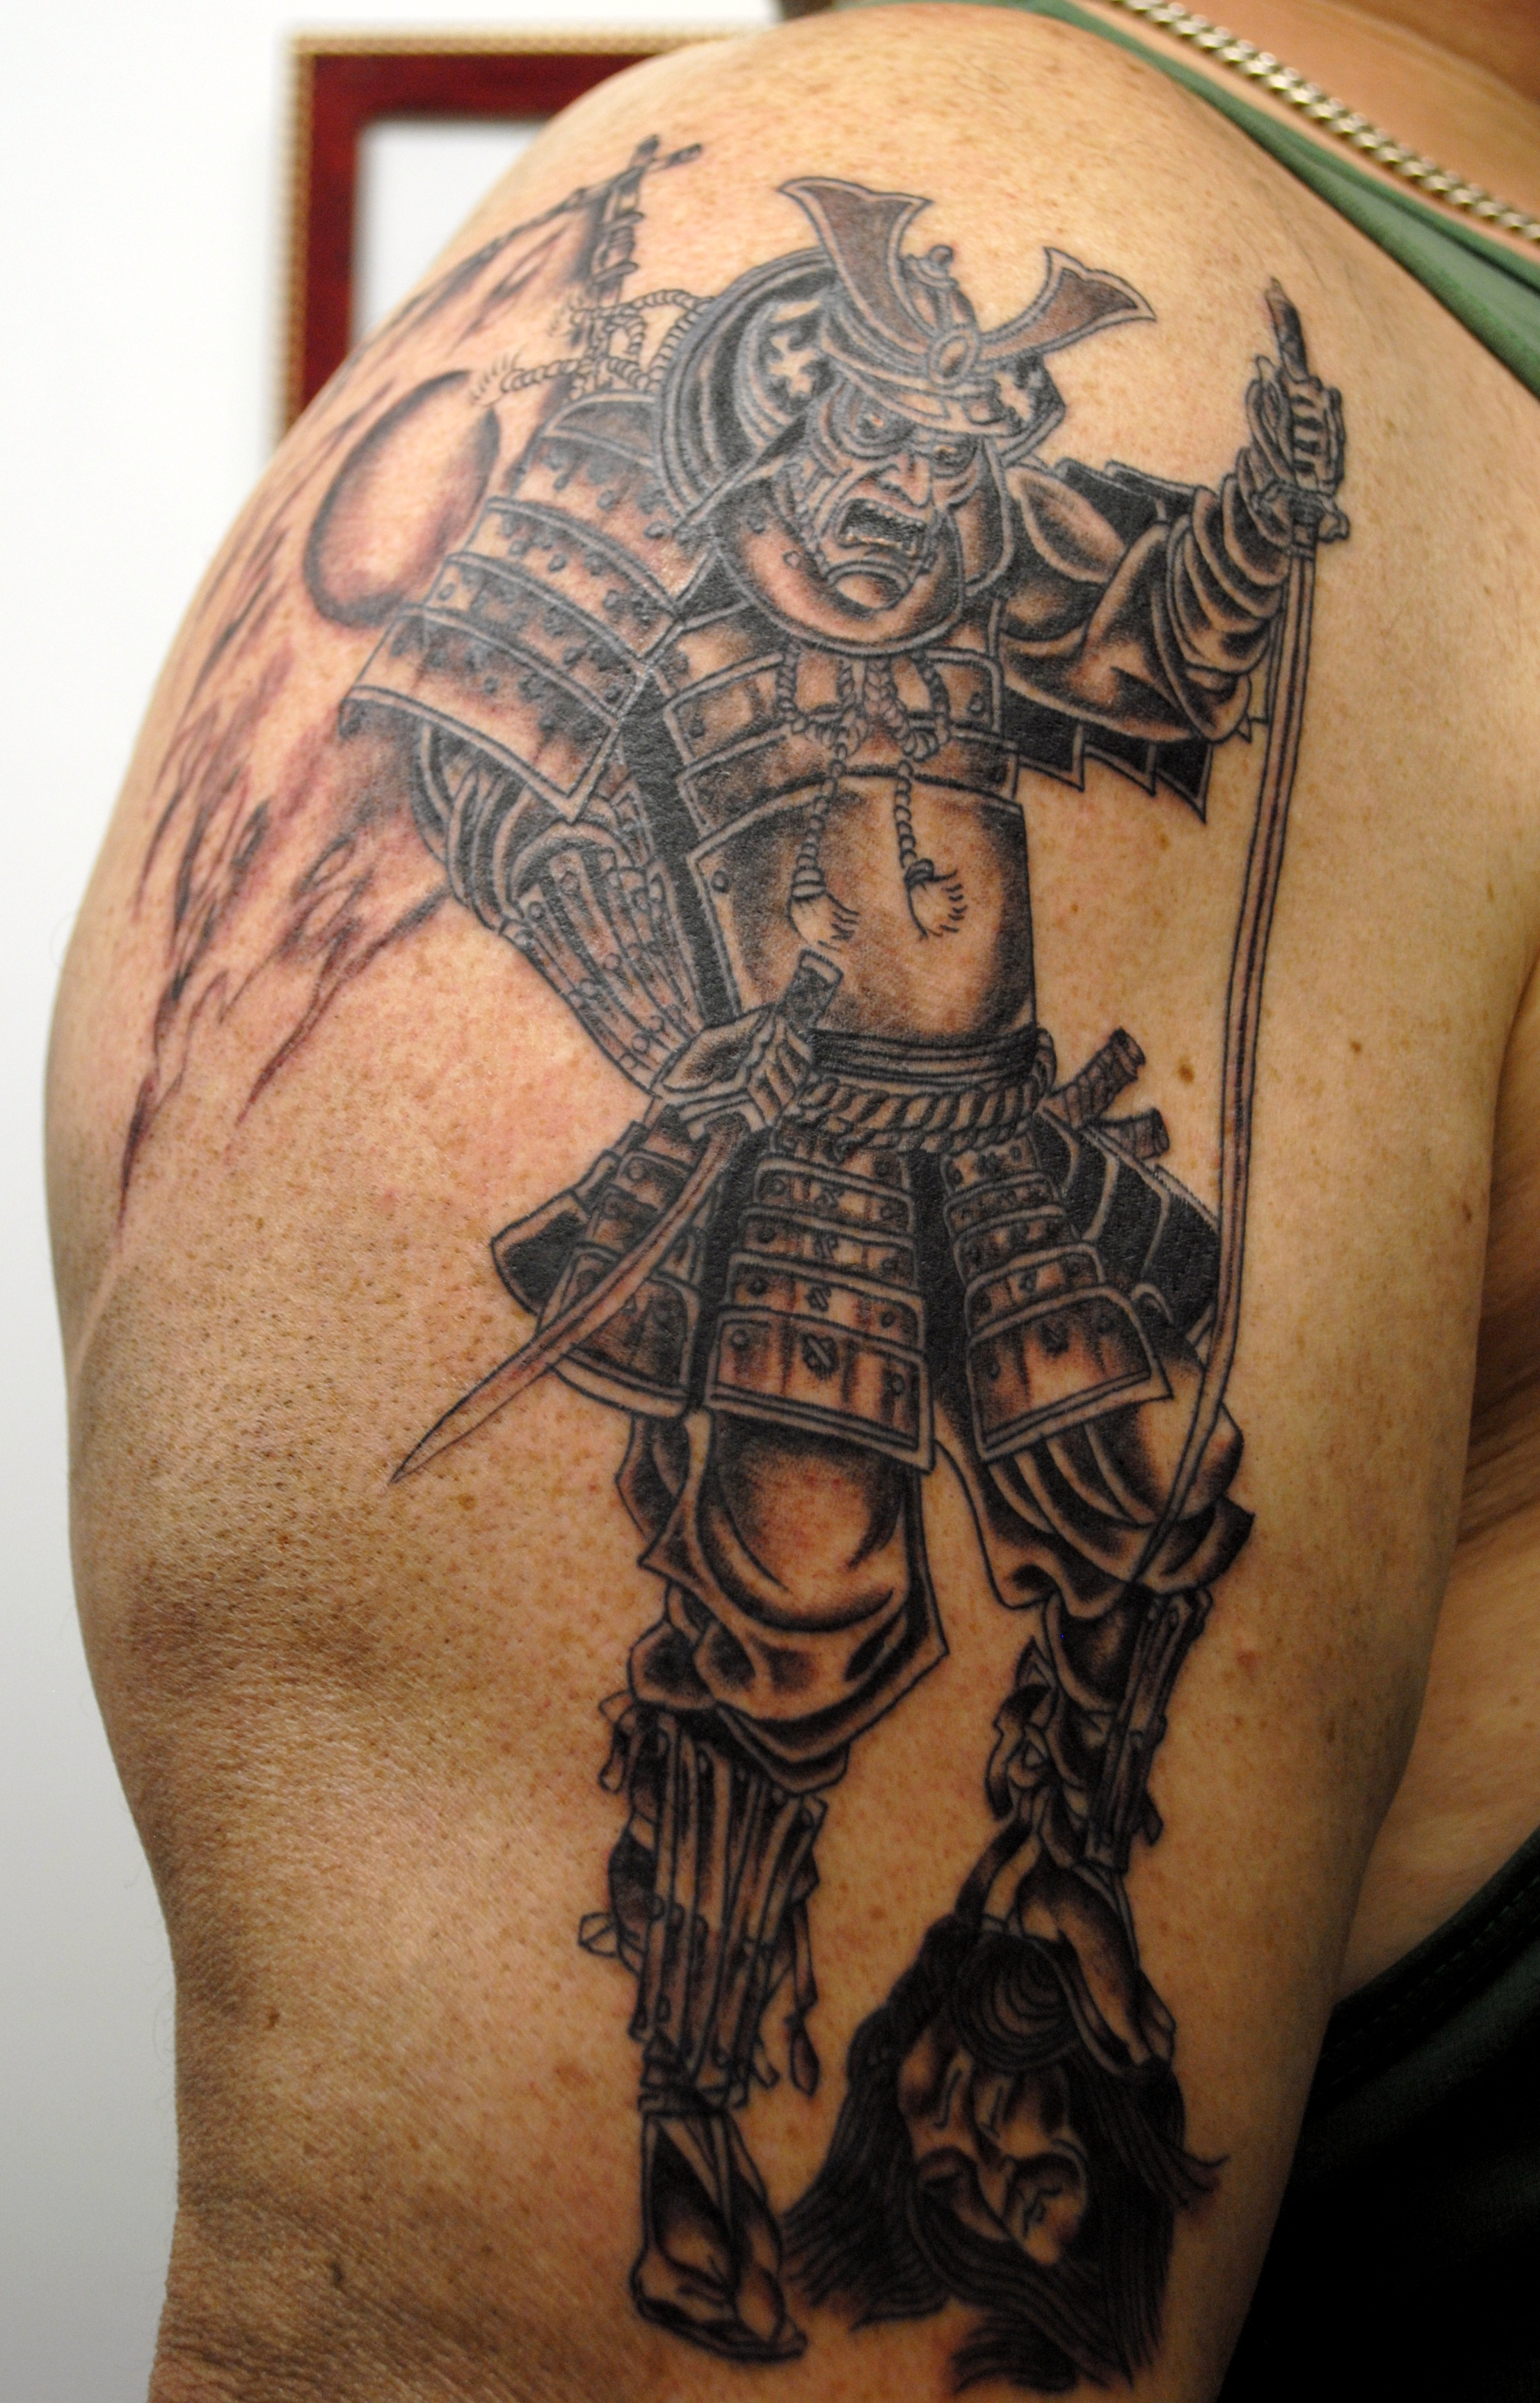 Samurai Tattoo by Powder at The Red Parl